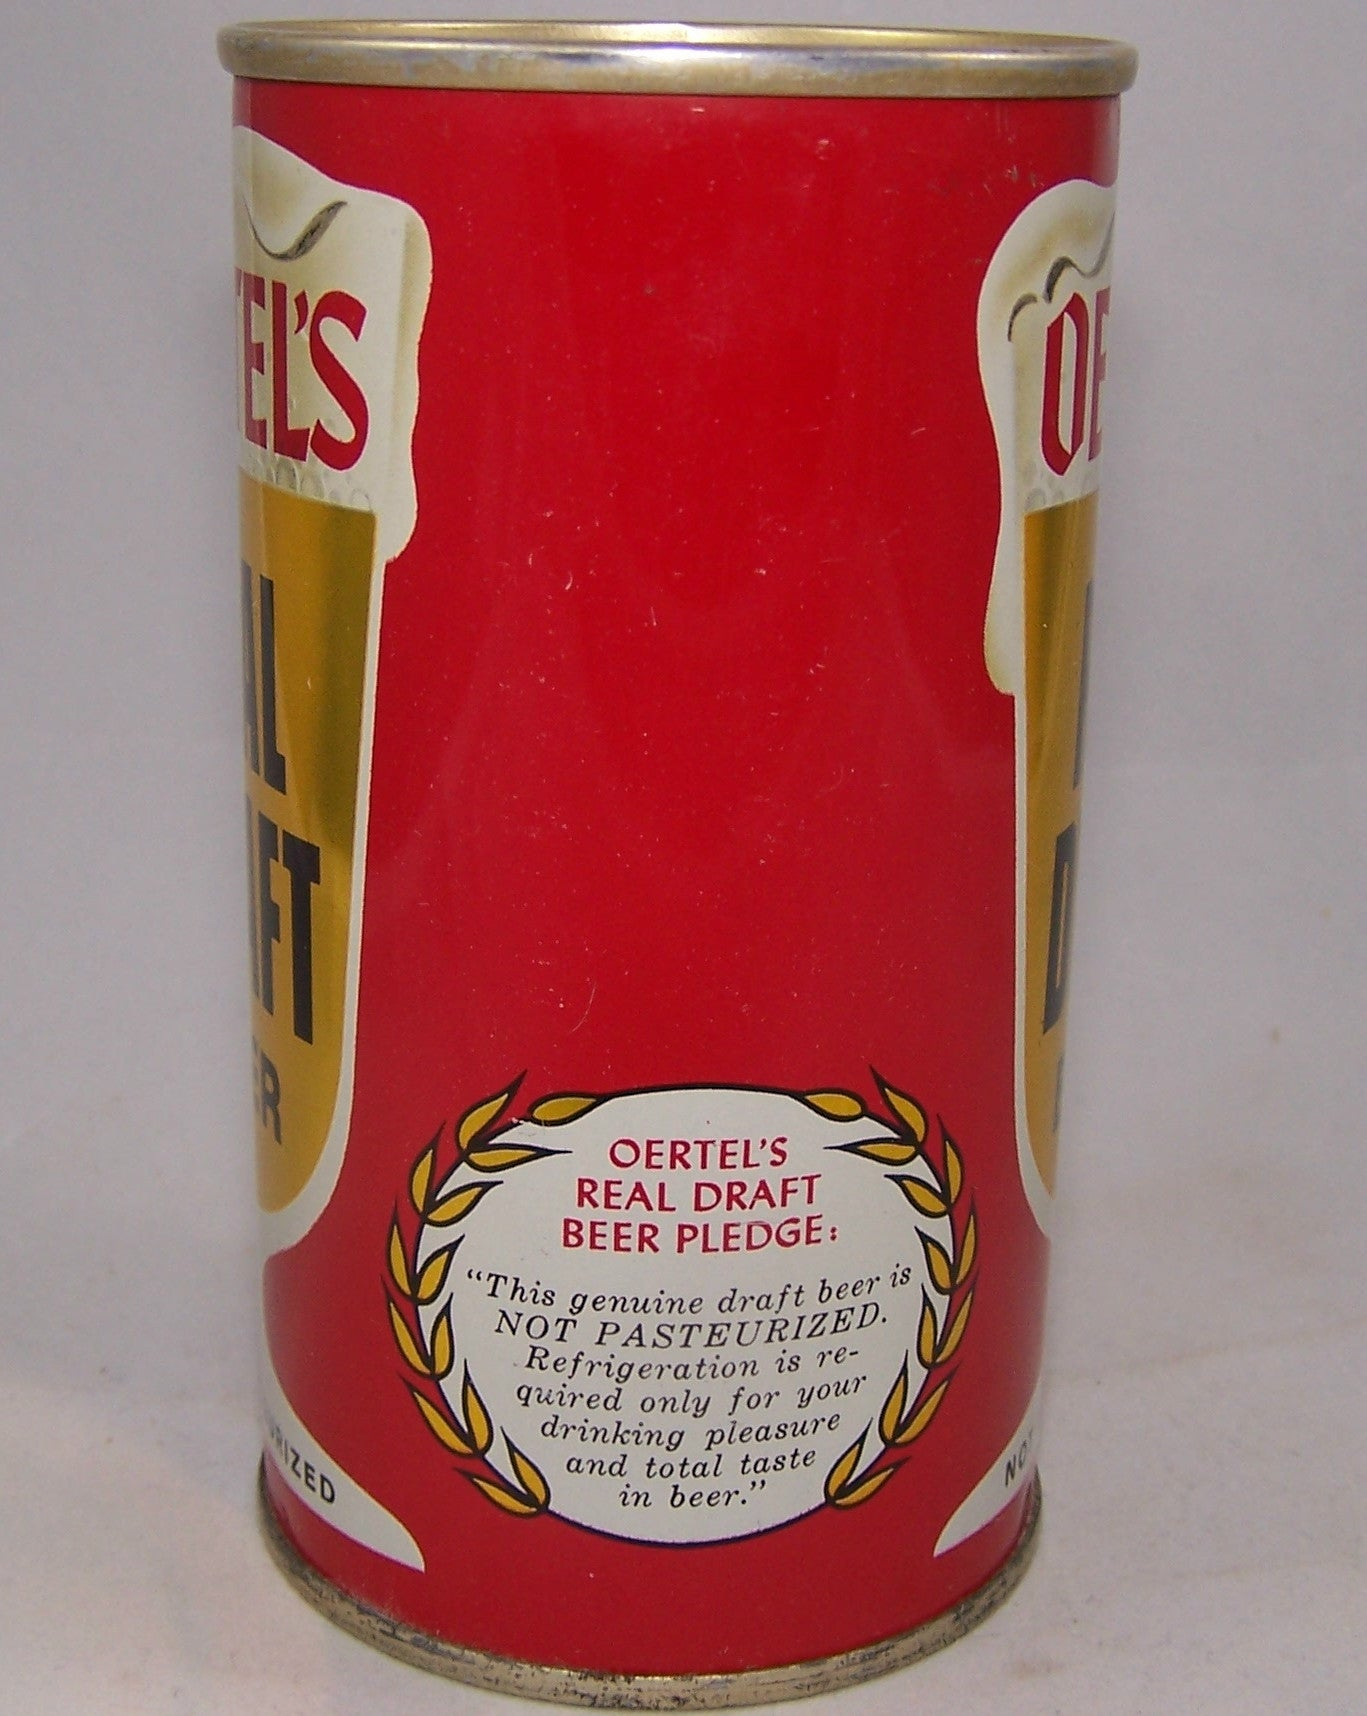 Oertel's Real Draft Beer, USBC II 99-04, Grade 1/1+